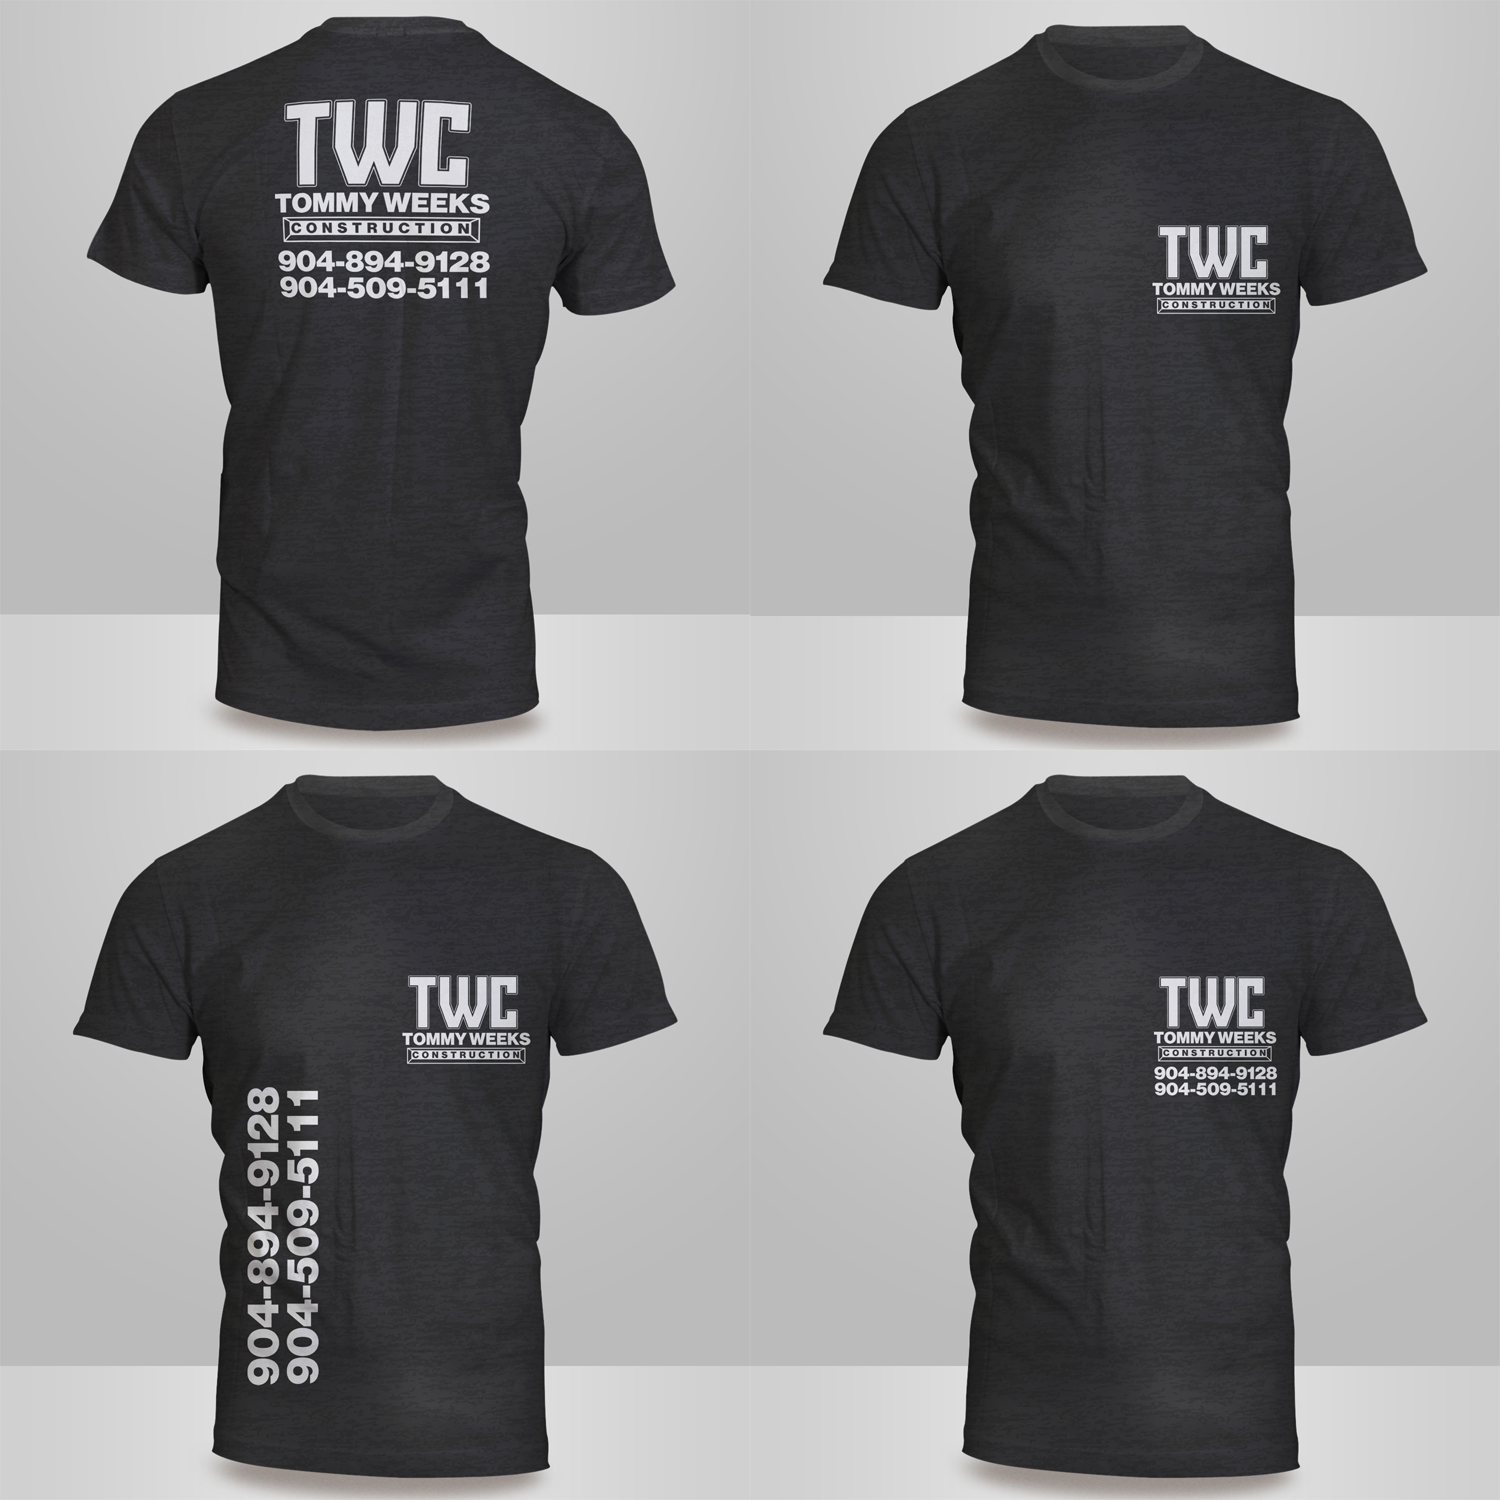 Modern, Masculine, Construction Company T-shirt Design for ... - photo#45